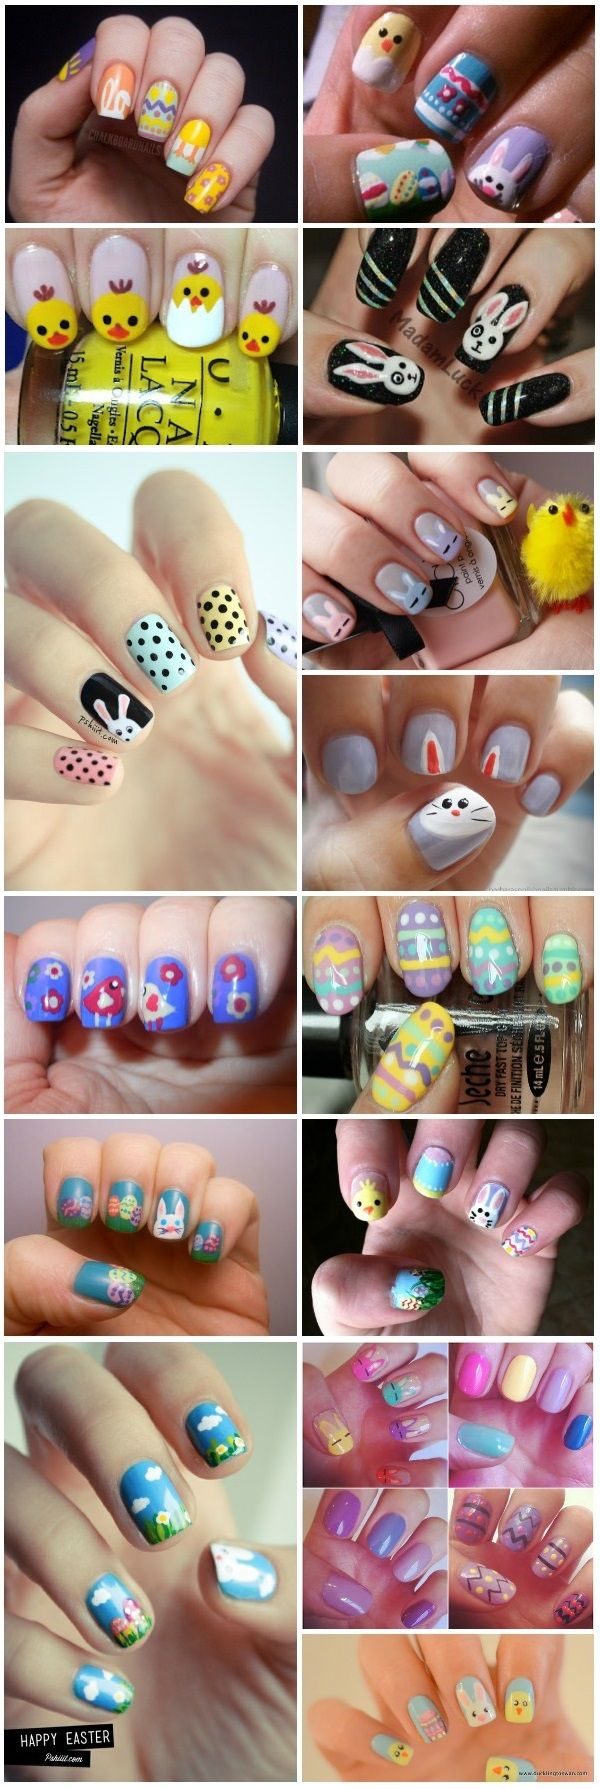 DIY Easter Nail Art Please visit our website @ http://rainbowloomsale.com